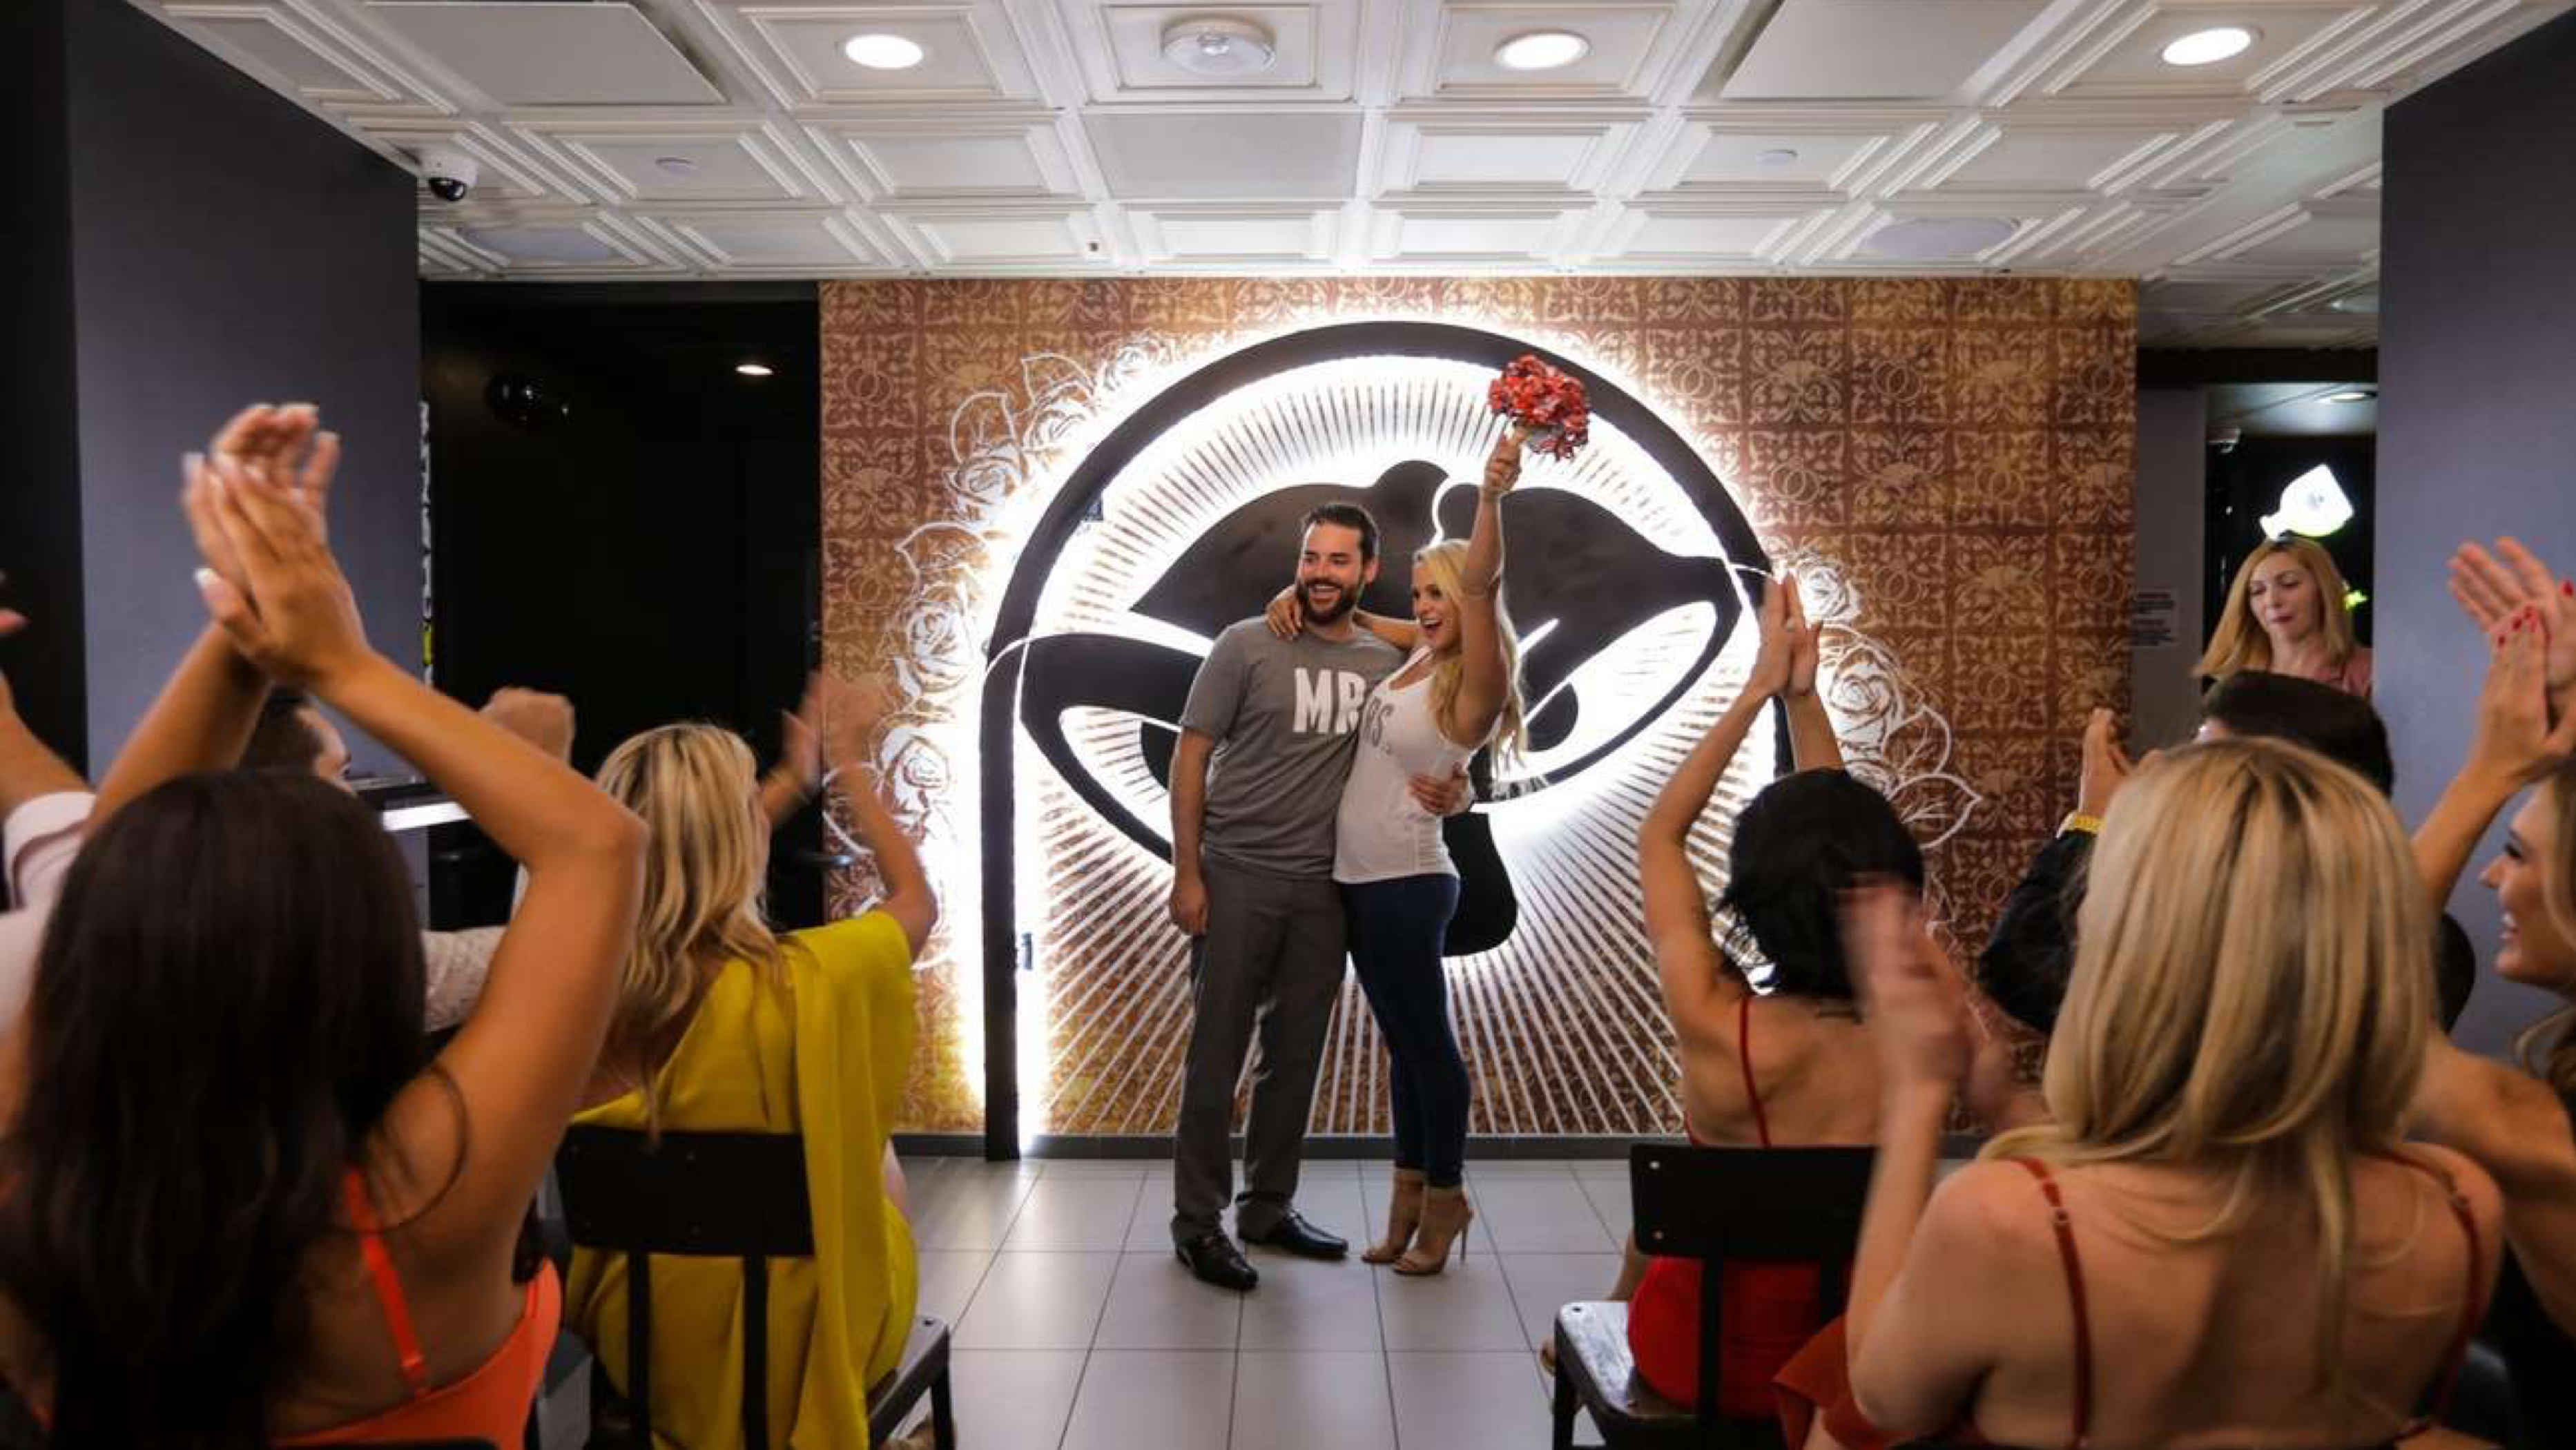 Here's the Skinny On Having a Supreme Taco Bell Wedding